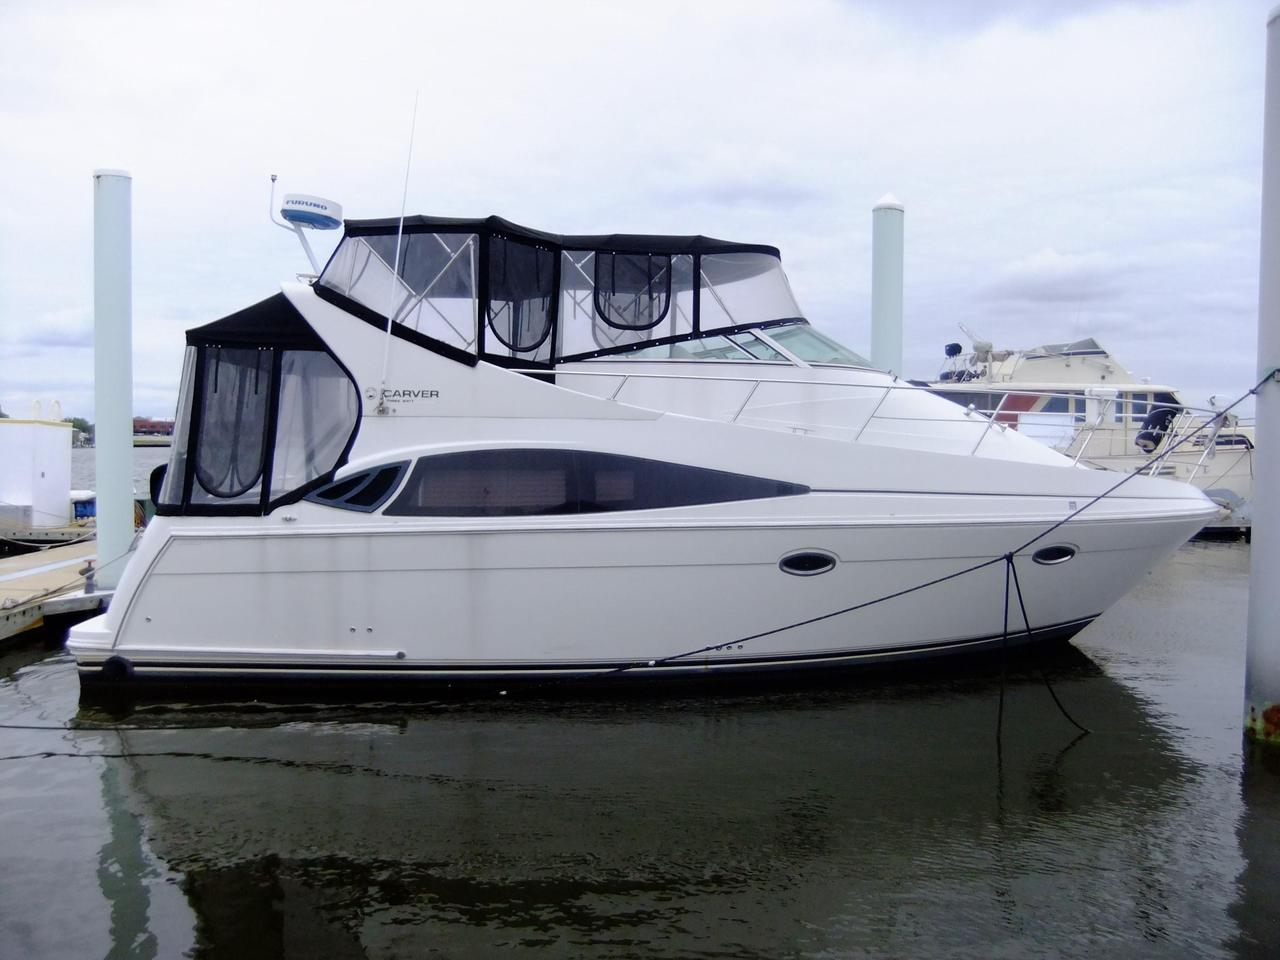 2004 Used Carver Yachts Mariner Motor Yacht For Sale